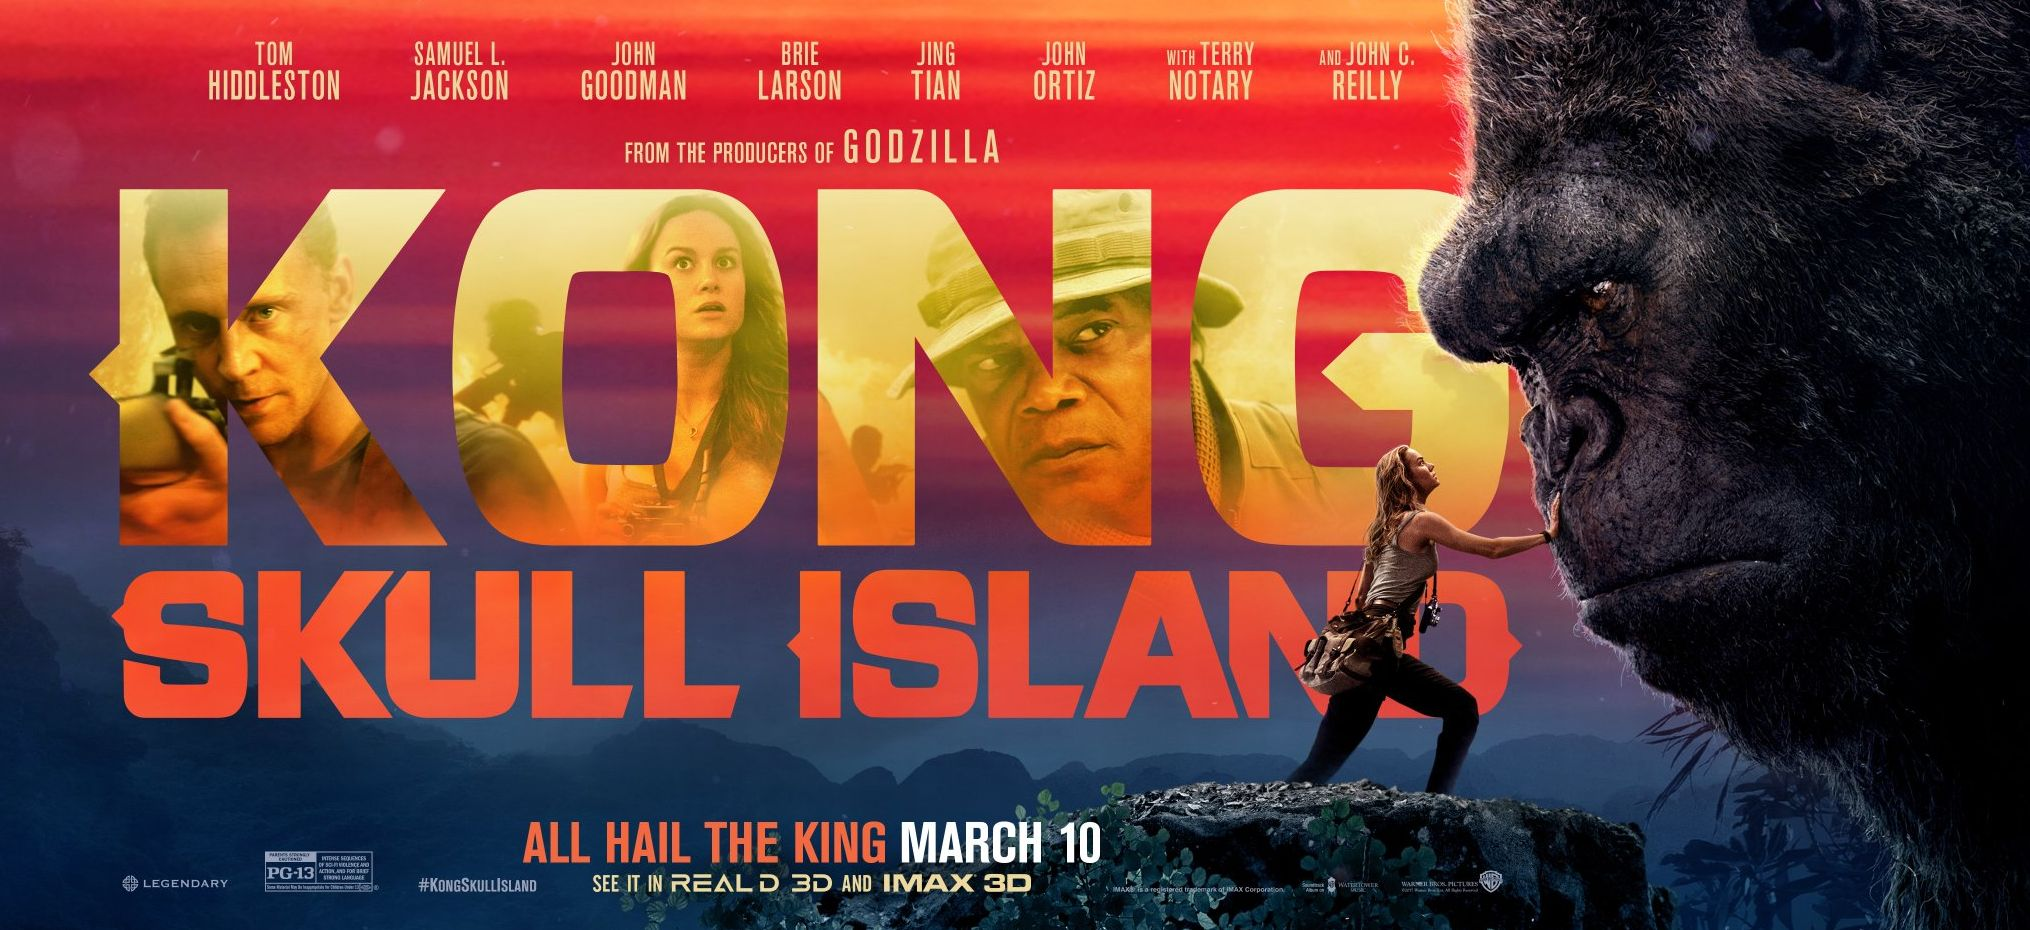 Brie Larson meets the King himself in a new banner for 'Kong